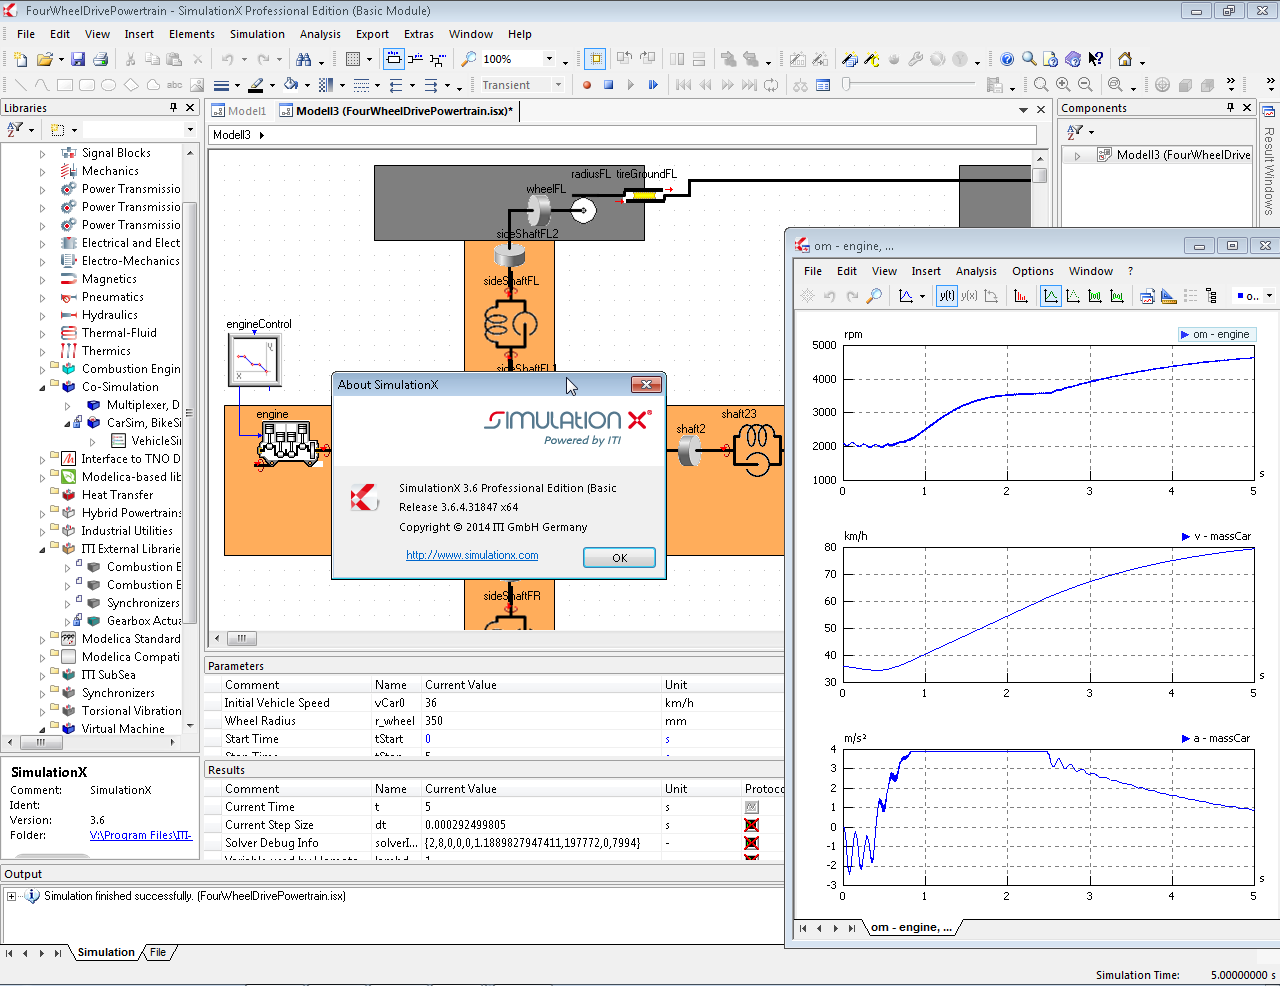 Working with ITI SimulationX 3.6.4 full license